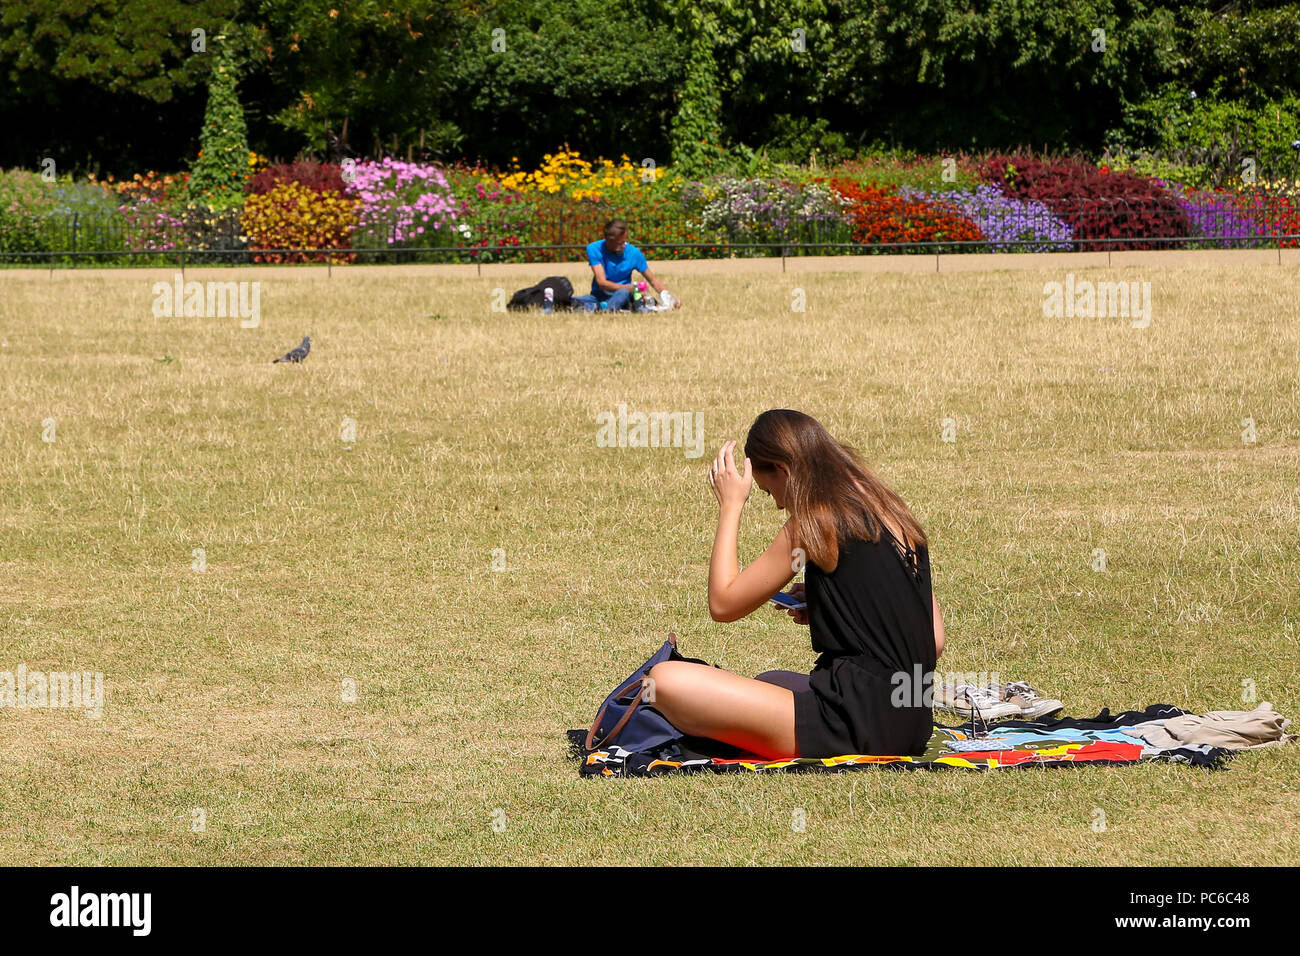 St James Park. London. UK 1 Aug 2018 - A woman relax on burnt grass in St James Park on a sunny and warm day in the capital. According to The Met Office the heatwave is to return after a brief drop in temperature and rainfall in the UK as 32 degrees celsius is forecasted for the coming weekend.   Credit: Dinendra Haria/Alamy Live News Stock Photo